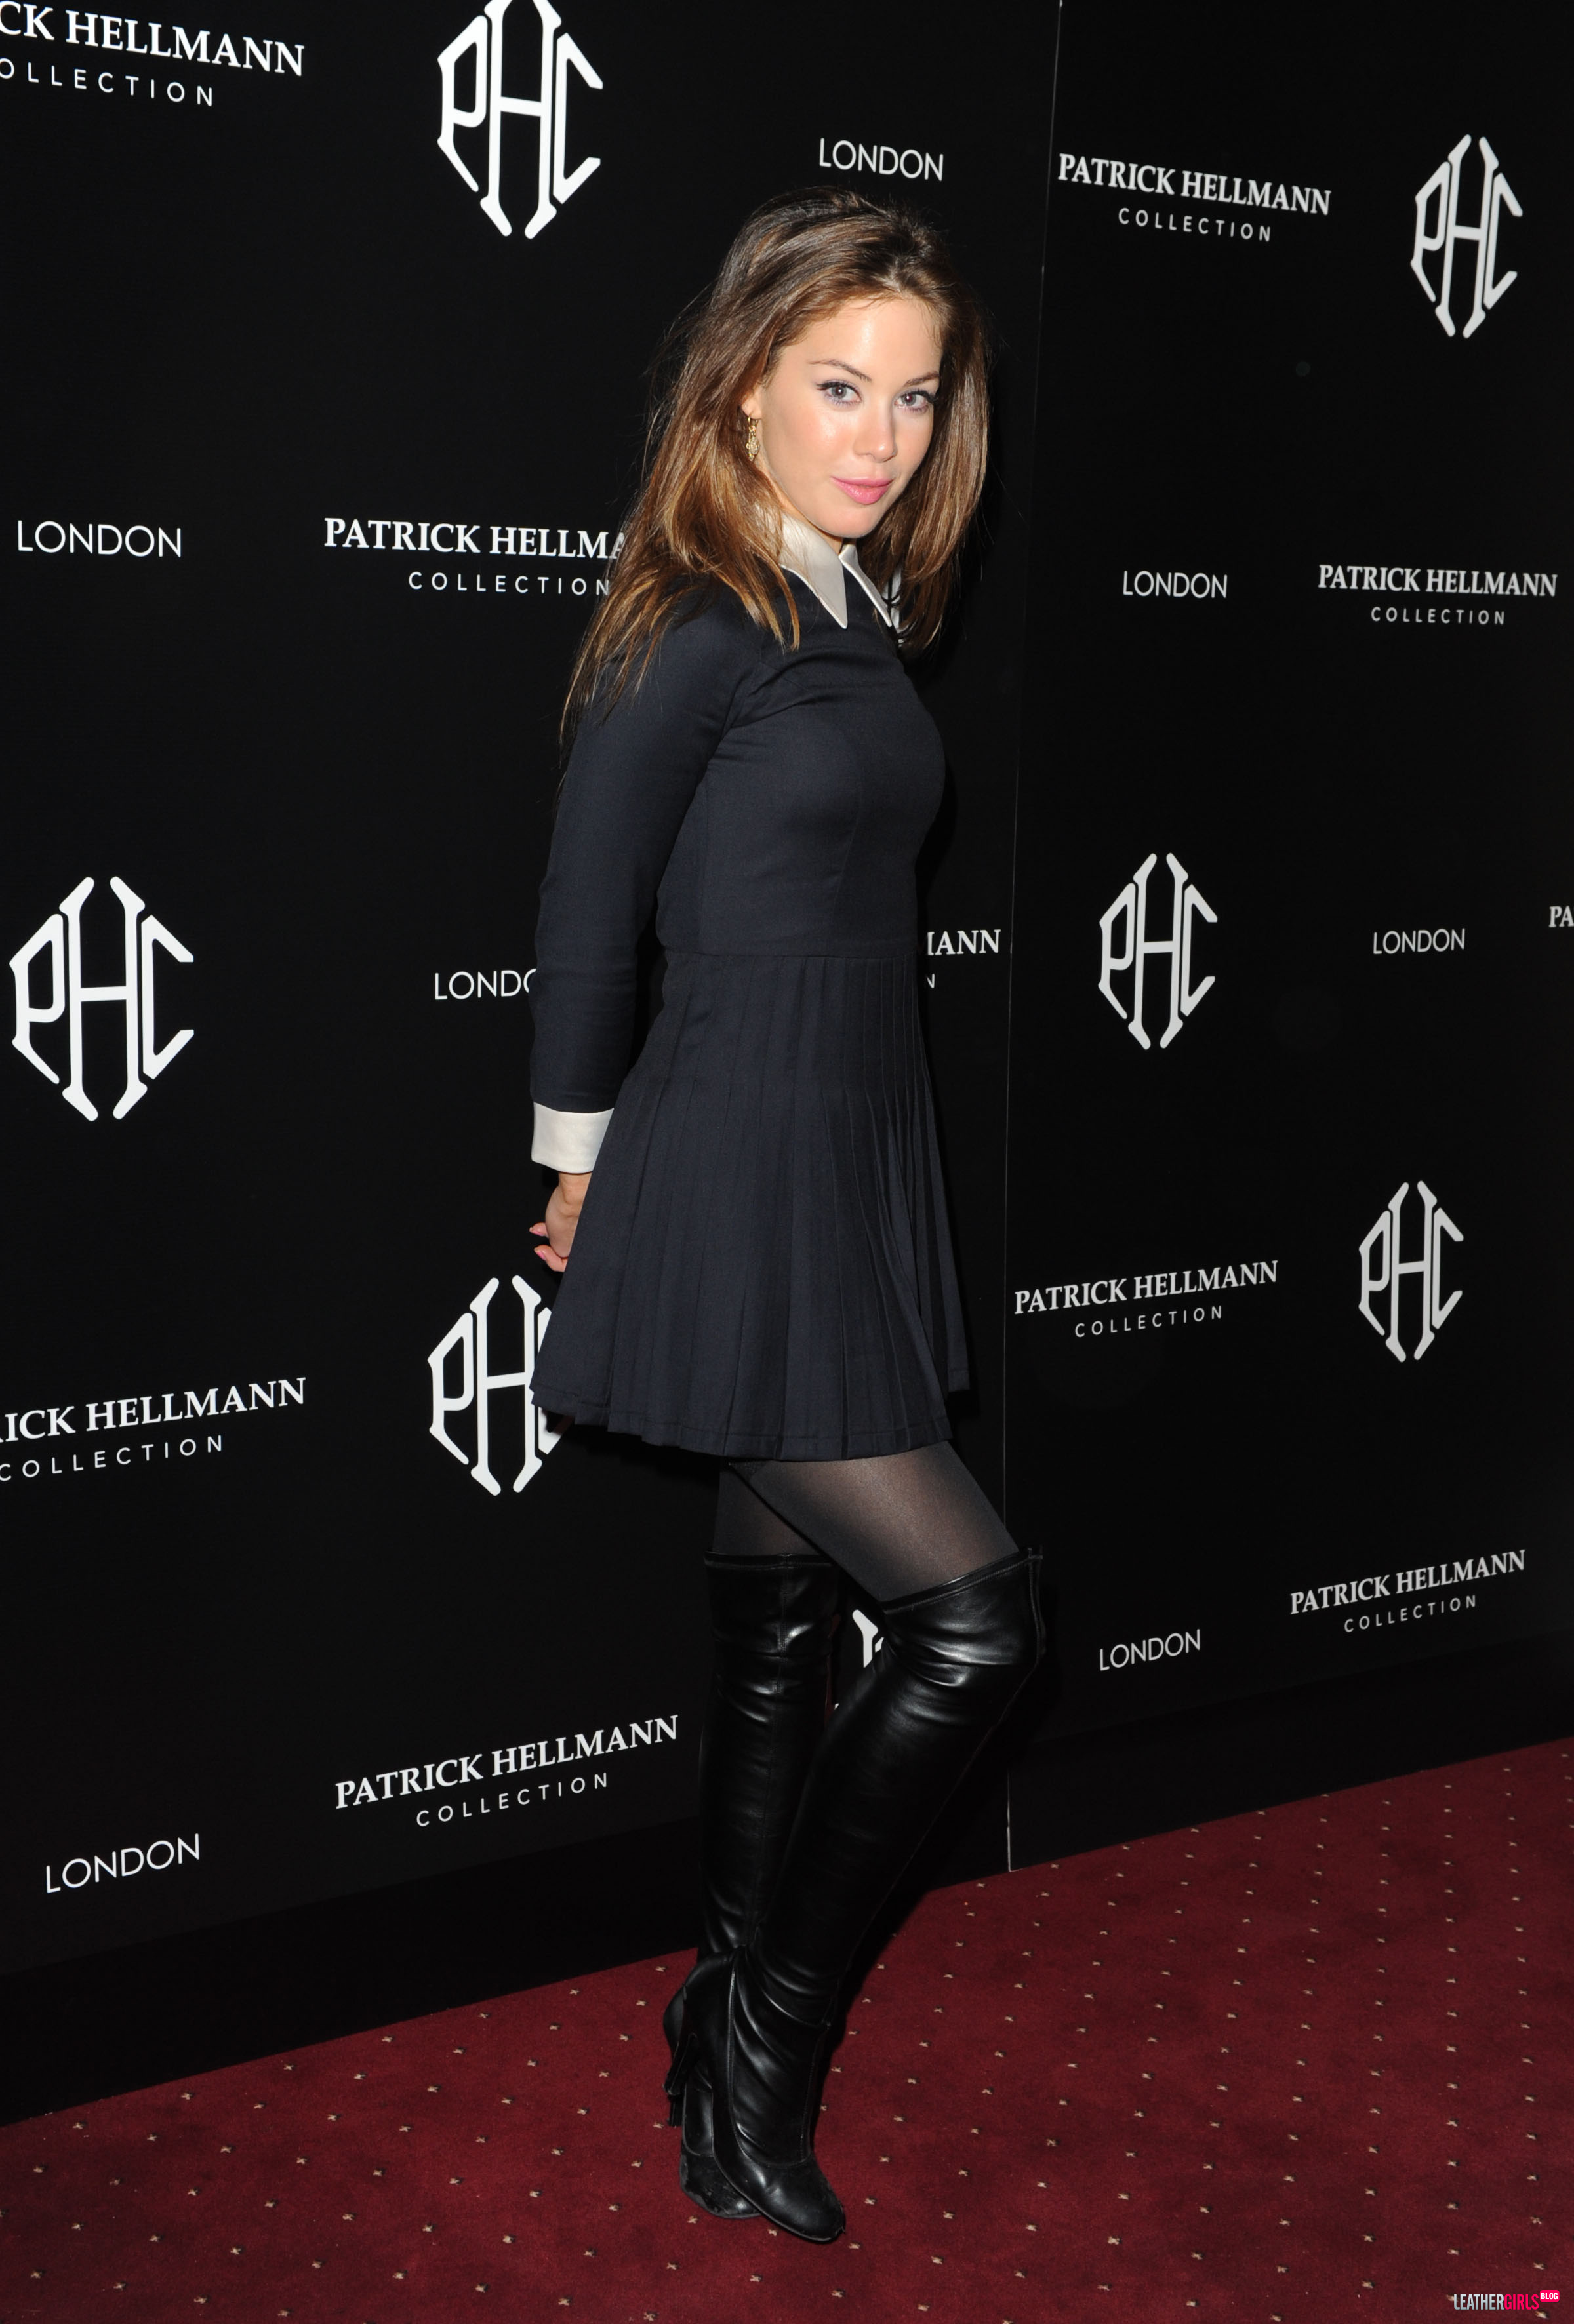 377553147_Roxanne_McKee___P_Hellmann_Event_14th_mar_2013001_122_1027lo.jpg